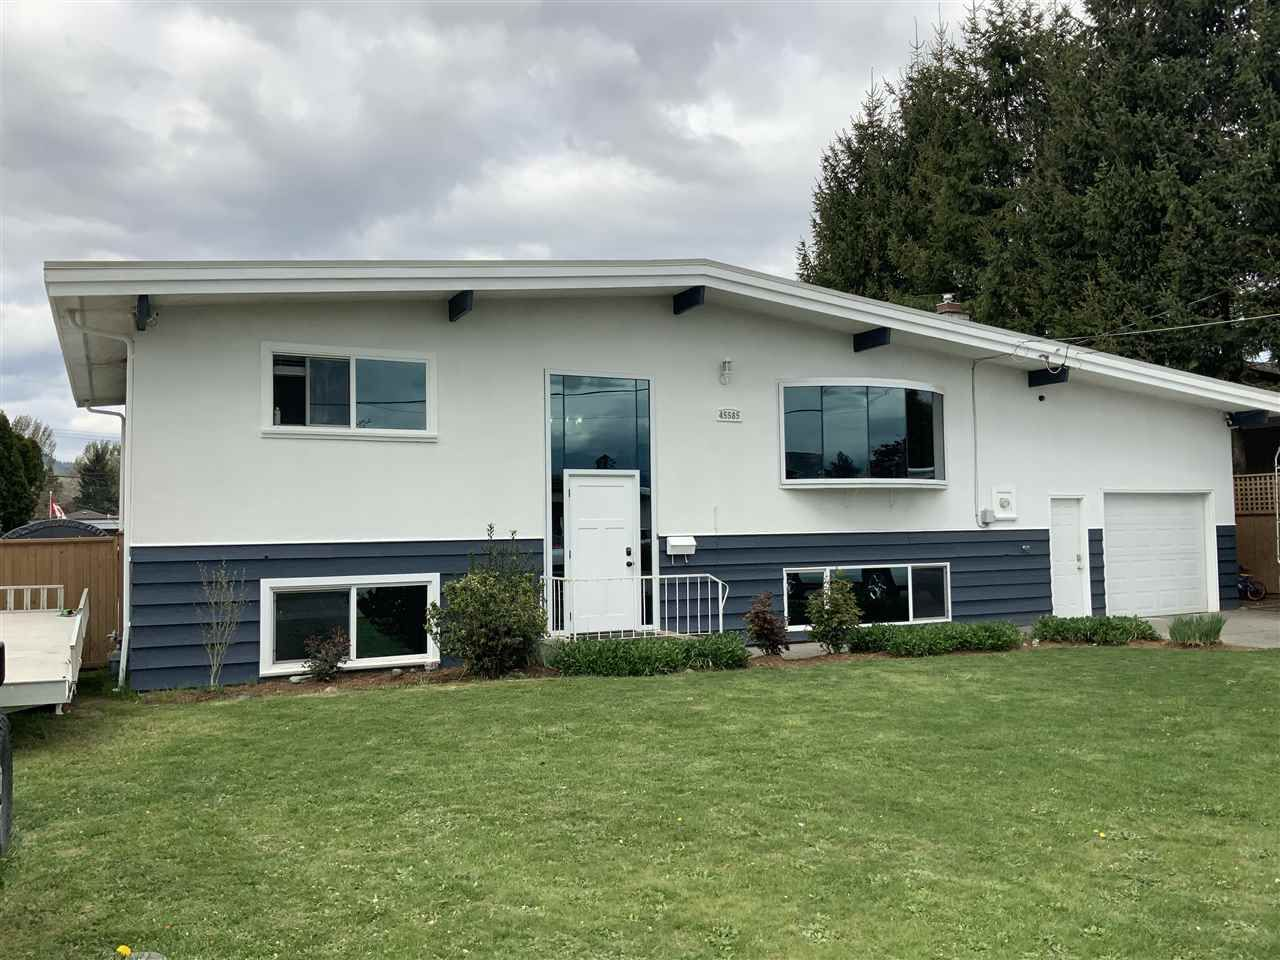 Main Photo: 45585 FERNWAY Avenue in Chilliwack: Chilliwack N Yale-Well House for sale : MLS®# R2452196